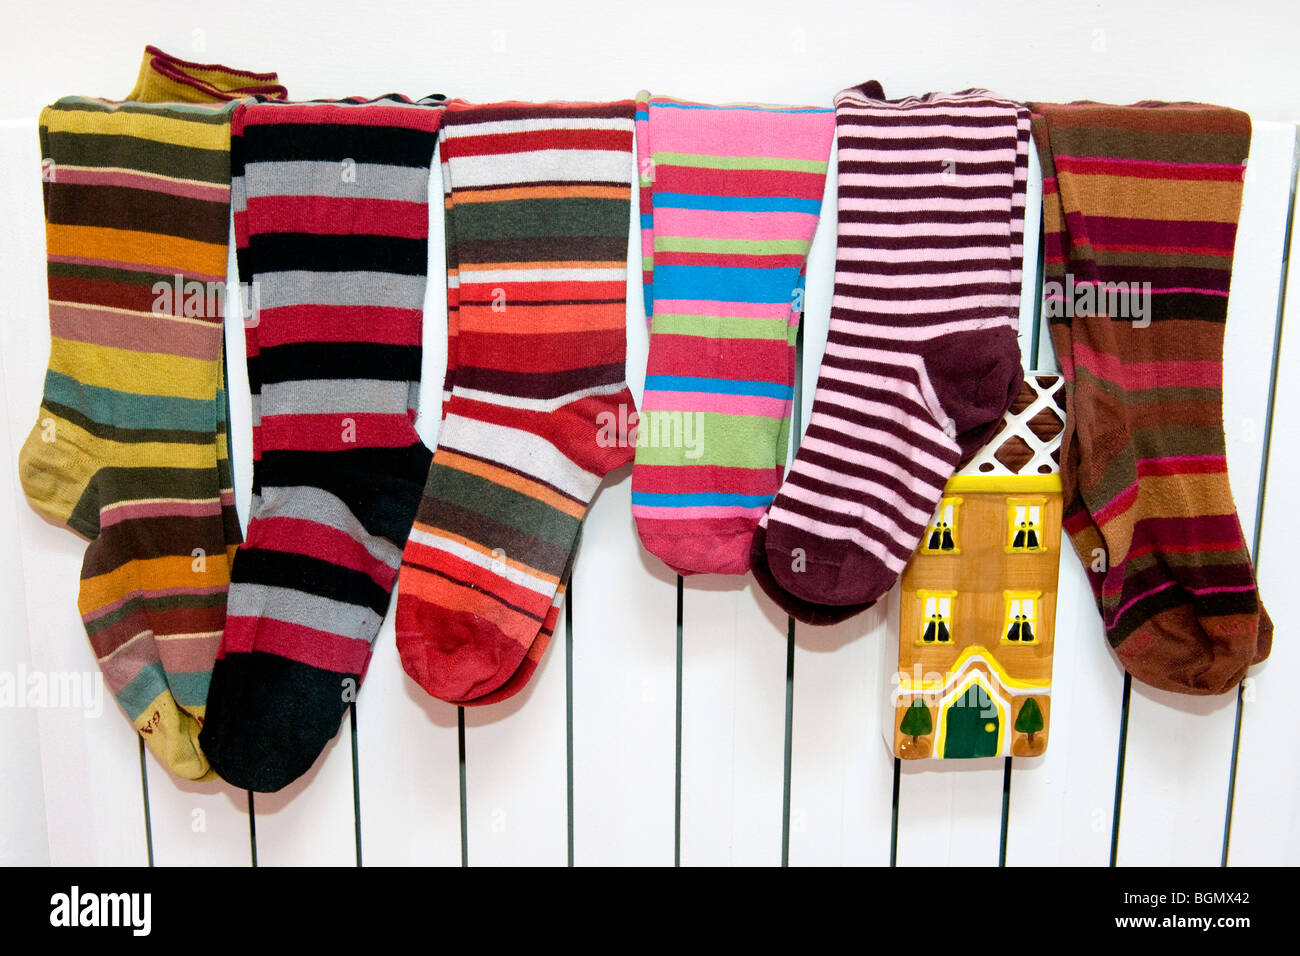 The colored striped socks - Stock Image